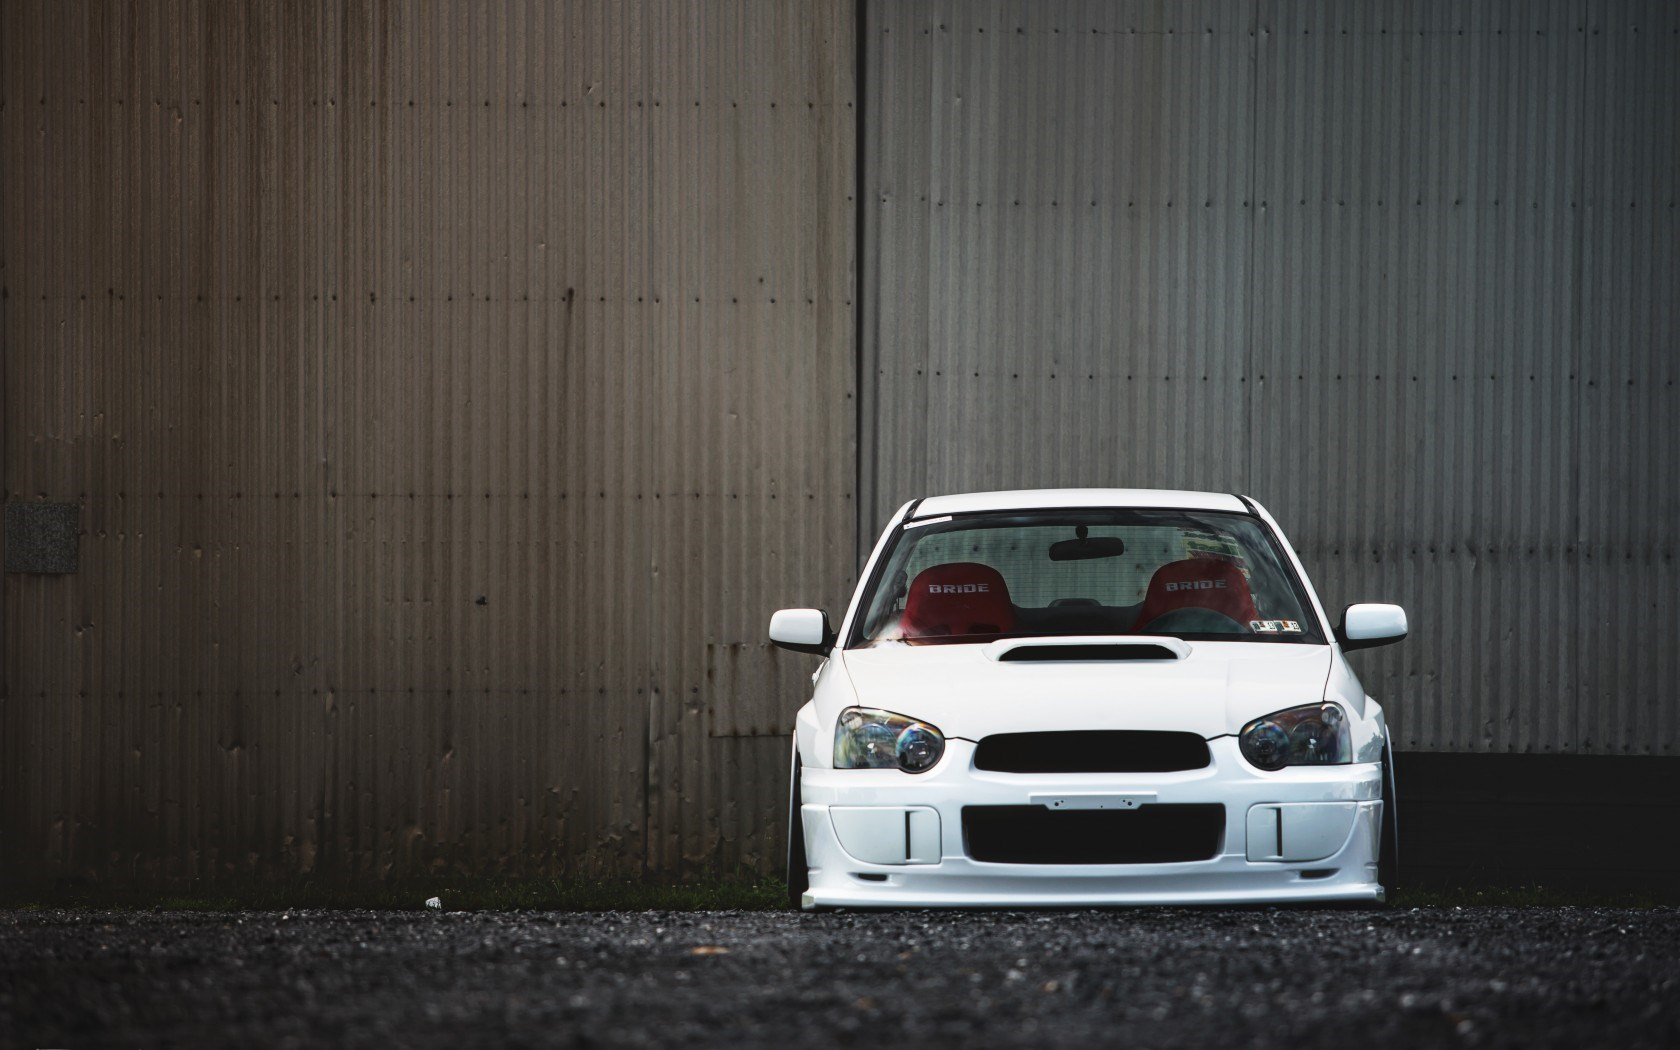 subaru impreza wrx sti tuning car wallpaper 1680x1050. Black Bedroom Furniture Sets. Home Design Ideas